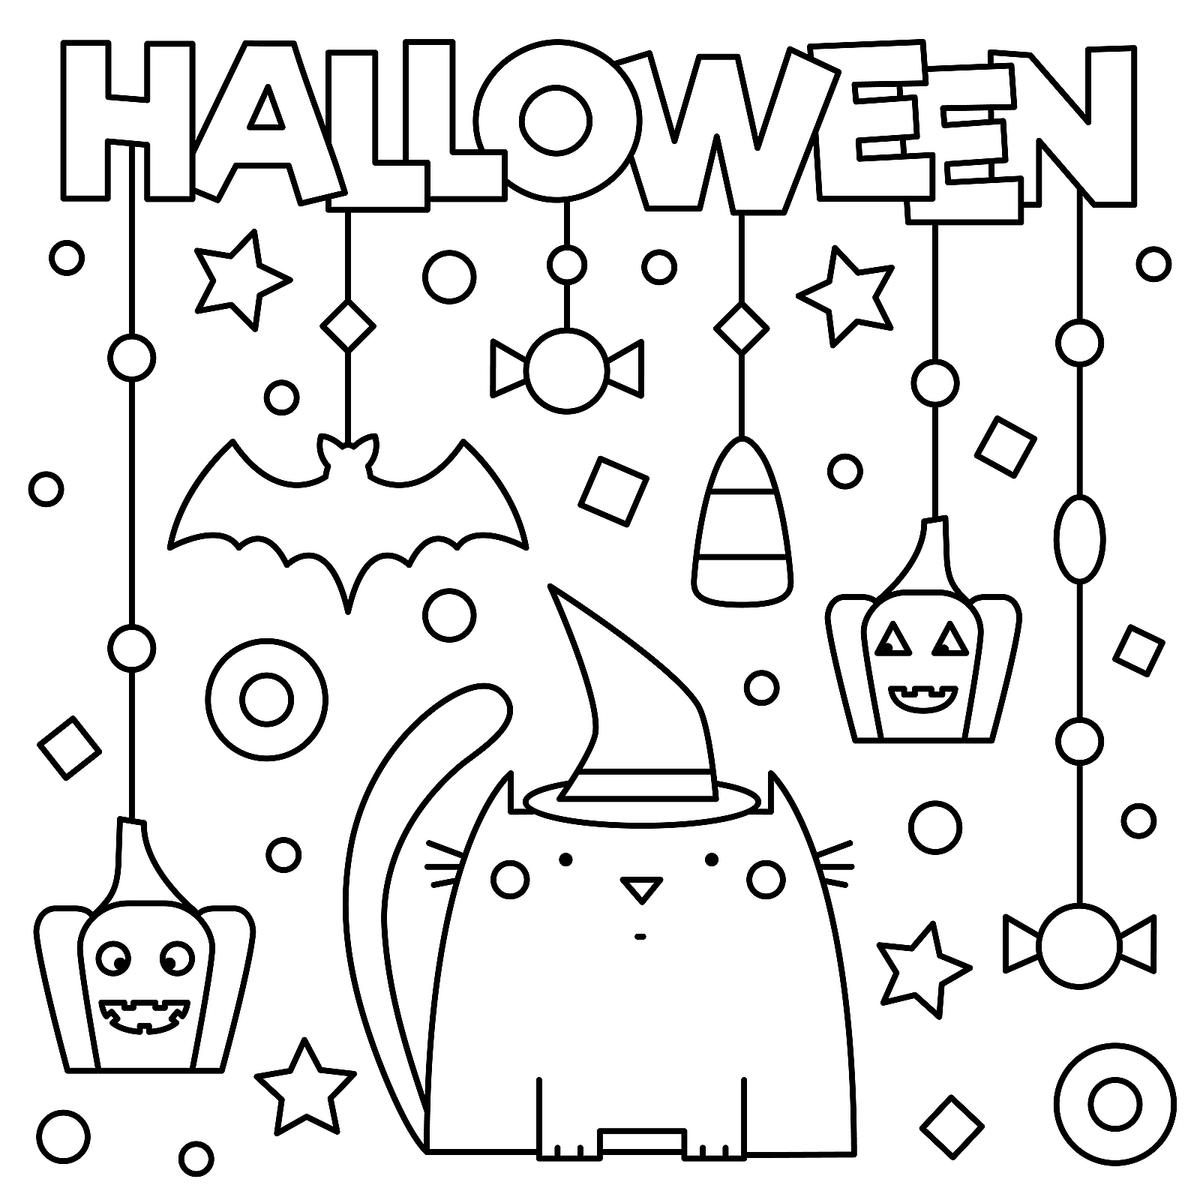 coloring sheets for halloween halloween coloring pages 10 free spooky printable sheets for halloween coloring